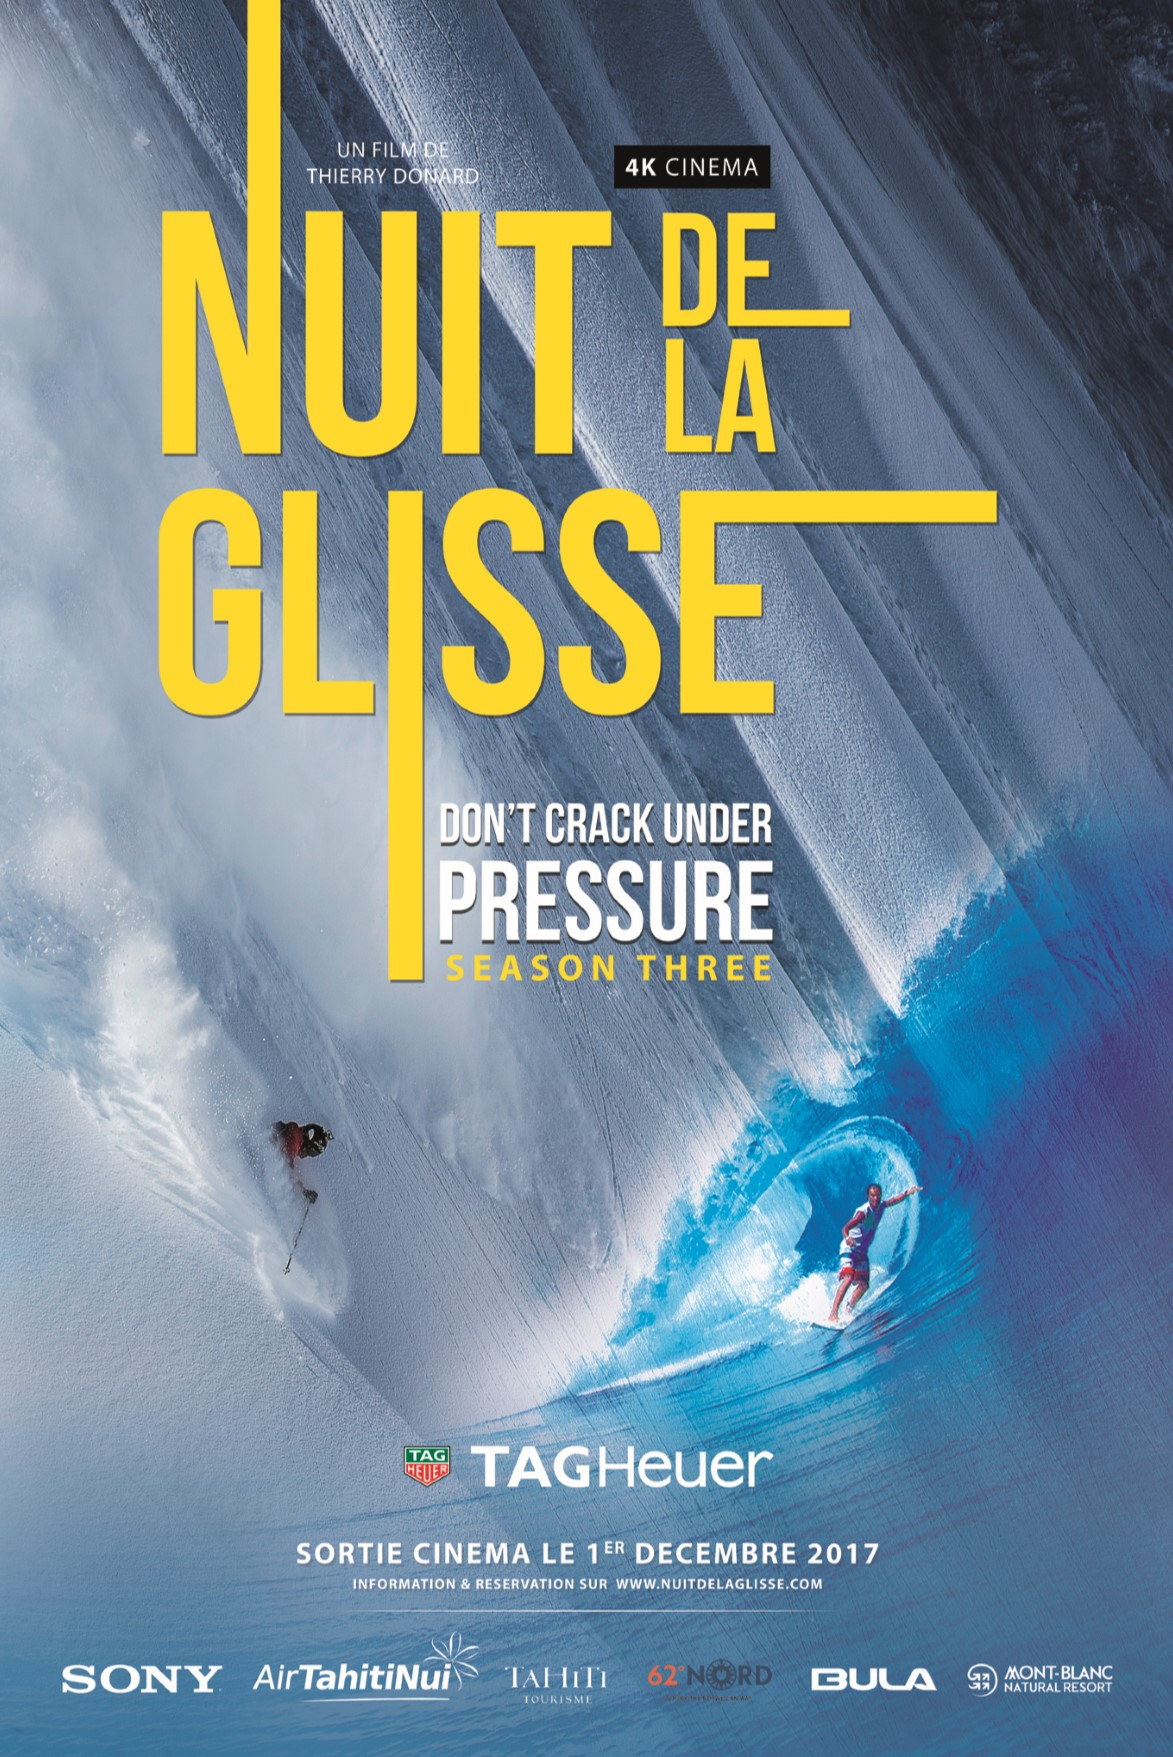 LA NUIT DE LA GLISSE Don't Crack Under Pressure season three